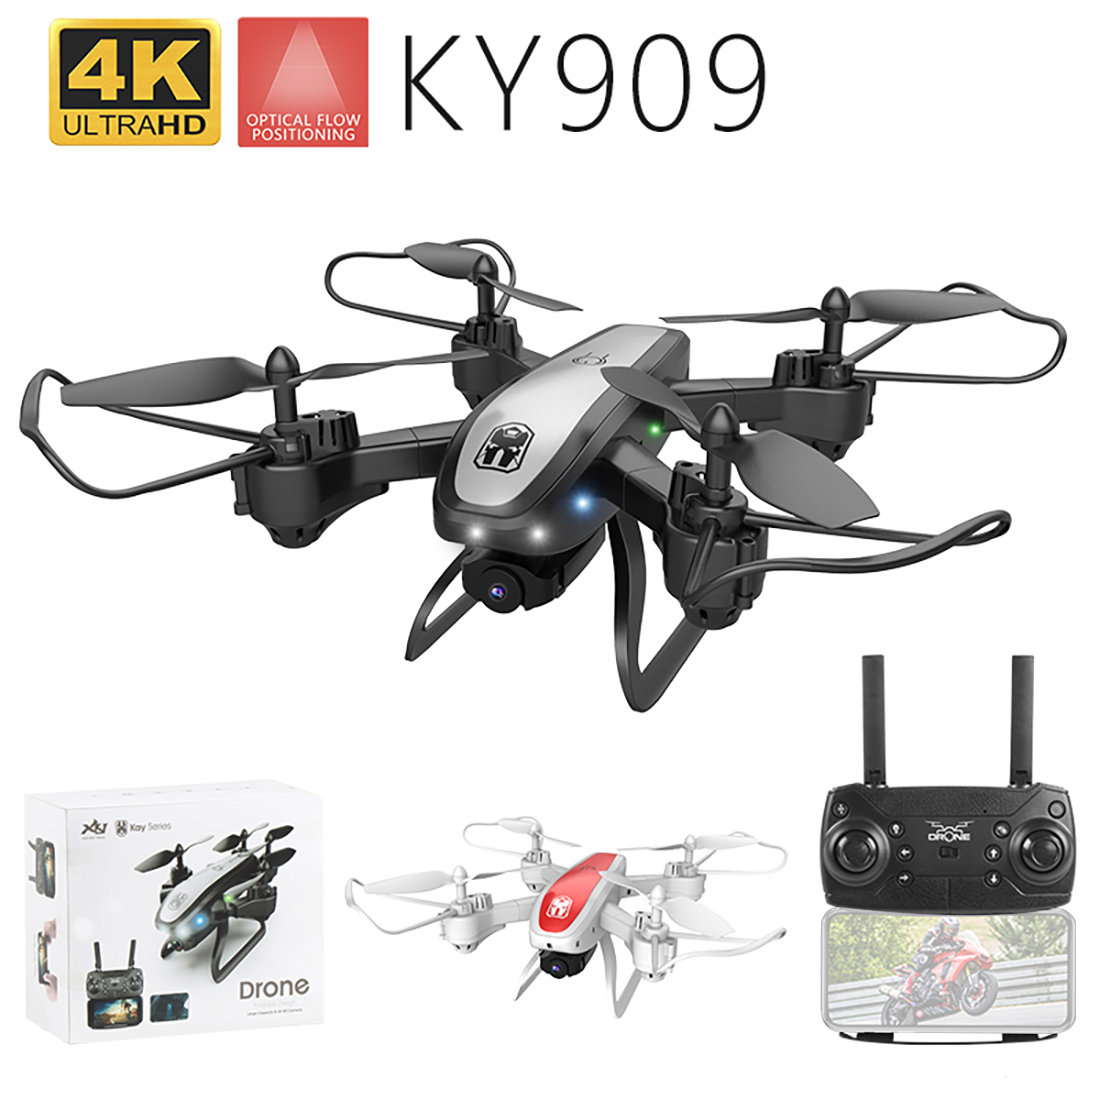 KY909 4K HD Camera <font><b>Drone</b></font> <font><b>FPV</b></font> WIFI Optical Flow Positioning RC Quadcopter Plane Folded Altitude Hold Long Battery Life Kids Toys image